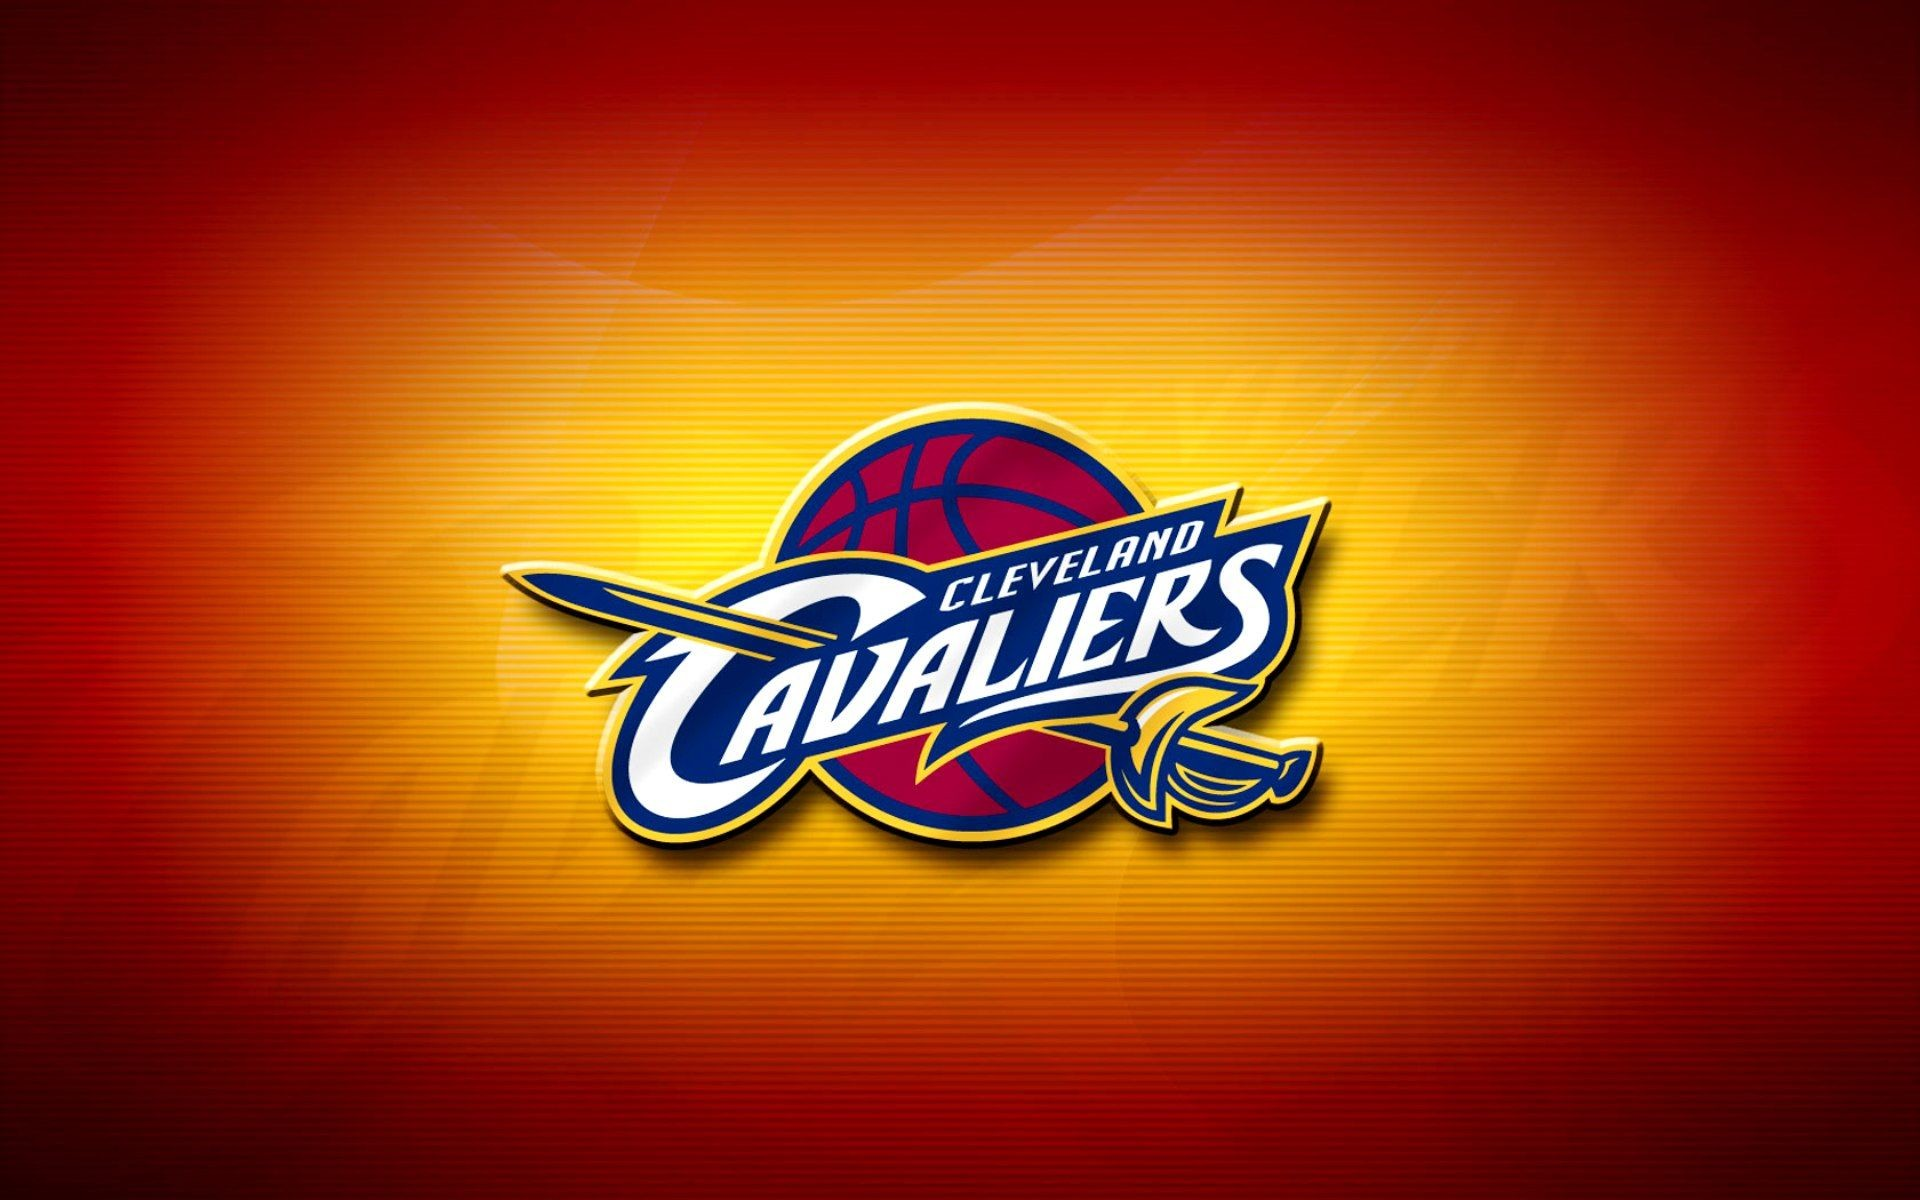 NBA Team Logos Wallpaper 2018 (71+ images).